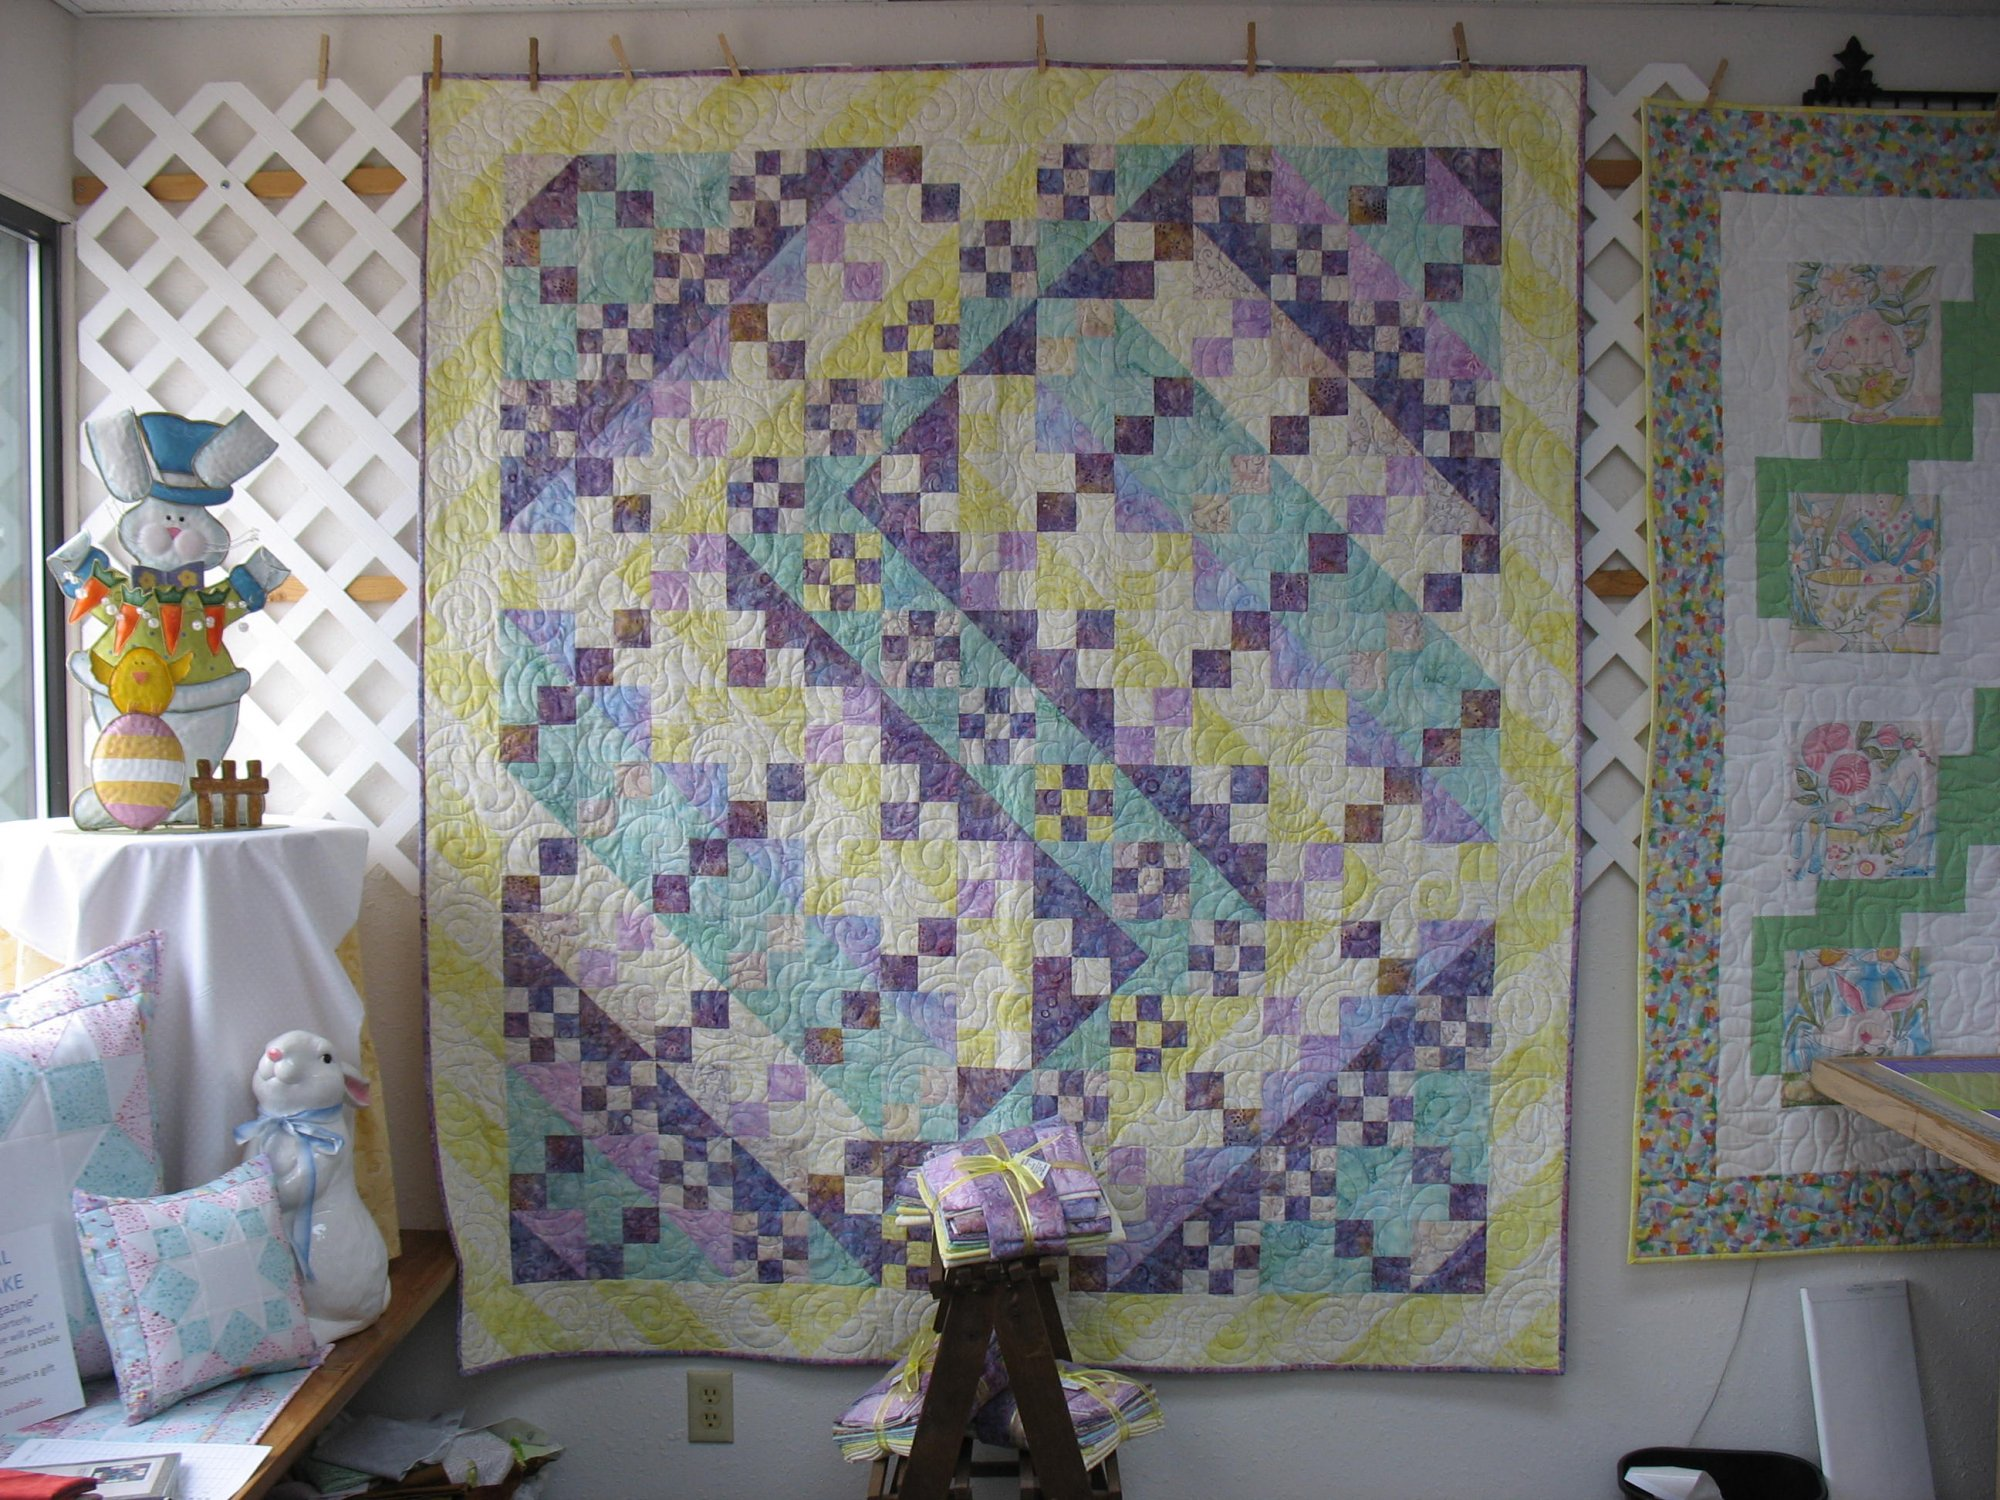 Showers & Flowers Quilt Kit now 25% off